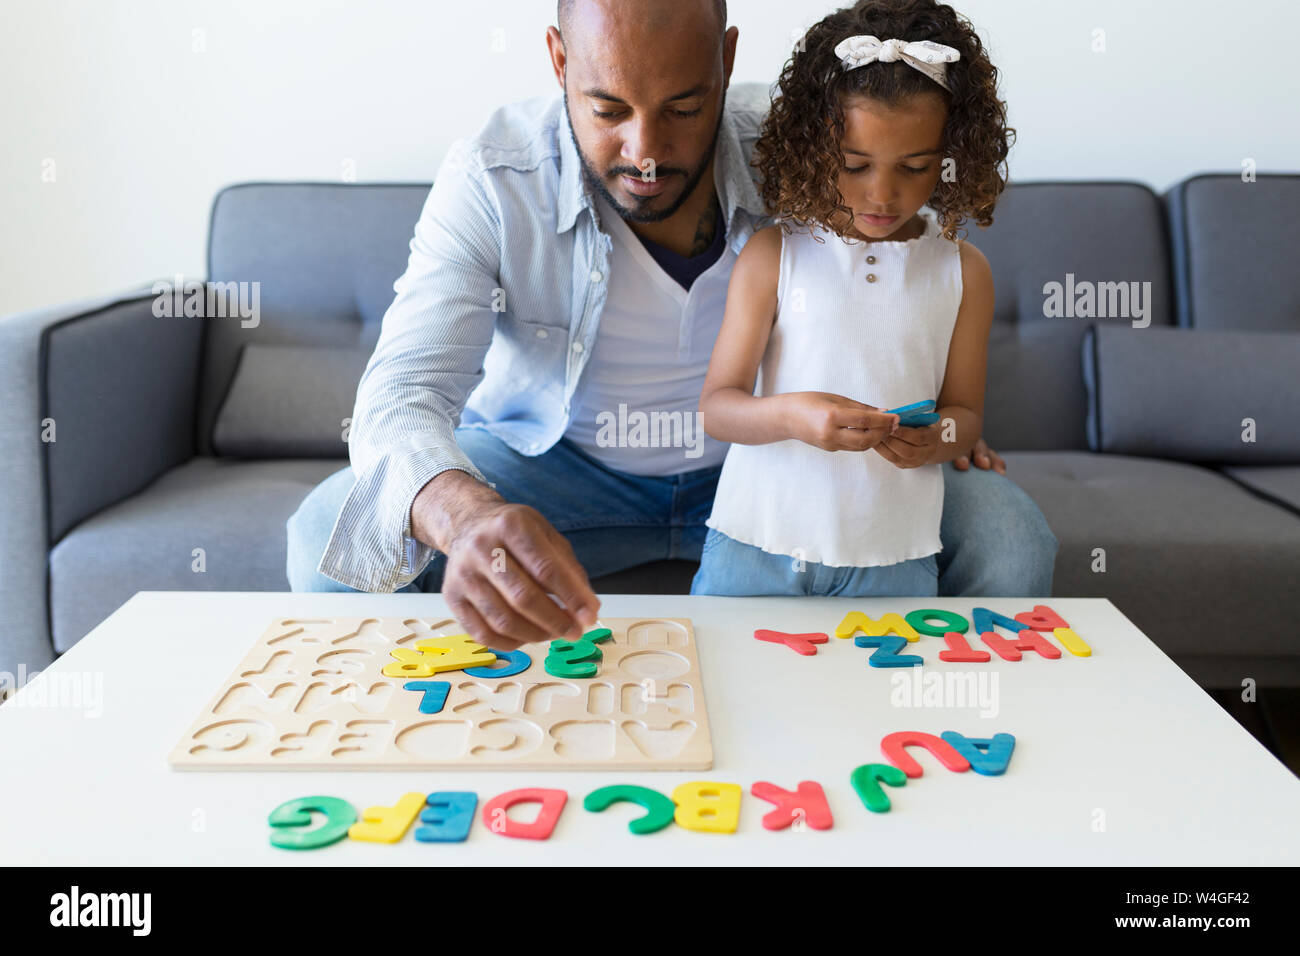 Father and daughter playing with alphabet learning game at home Stock Photo